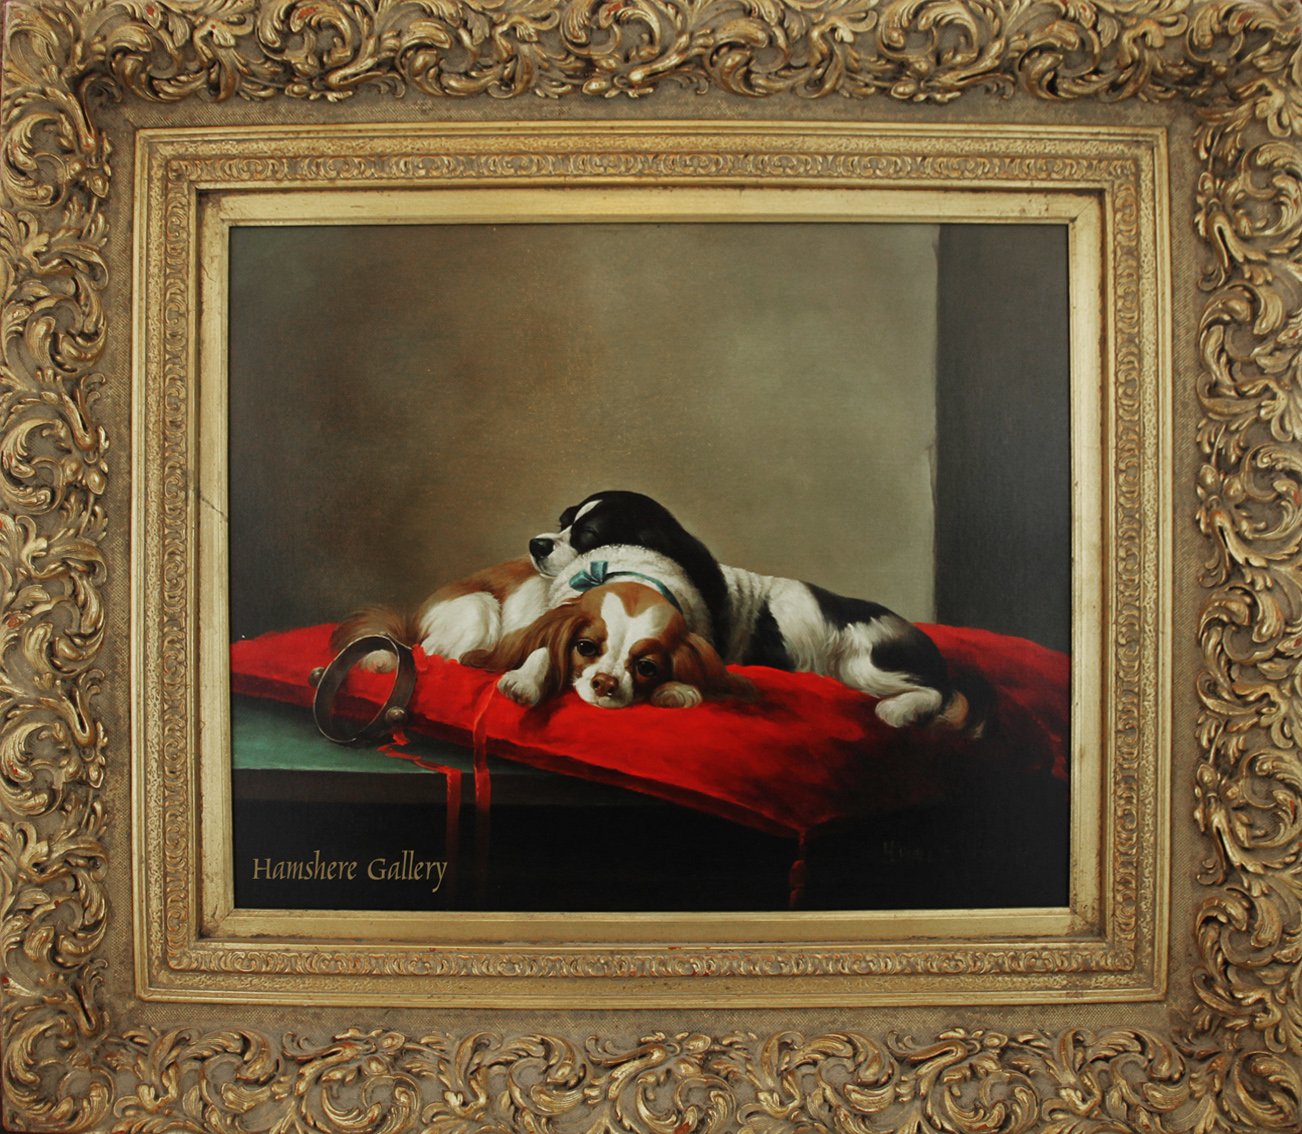 Click to see full size: Oil on board of two King Charles Cavalier Spaniels resting on a red cushion by H Hagel. �Signed �H Hagel�- Oil on board of two King Charles Cavalier Spaniels resting on a red cushion by H Hagel. �Signed �H Hagel�